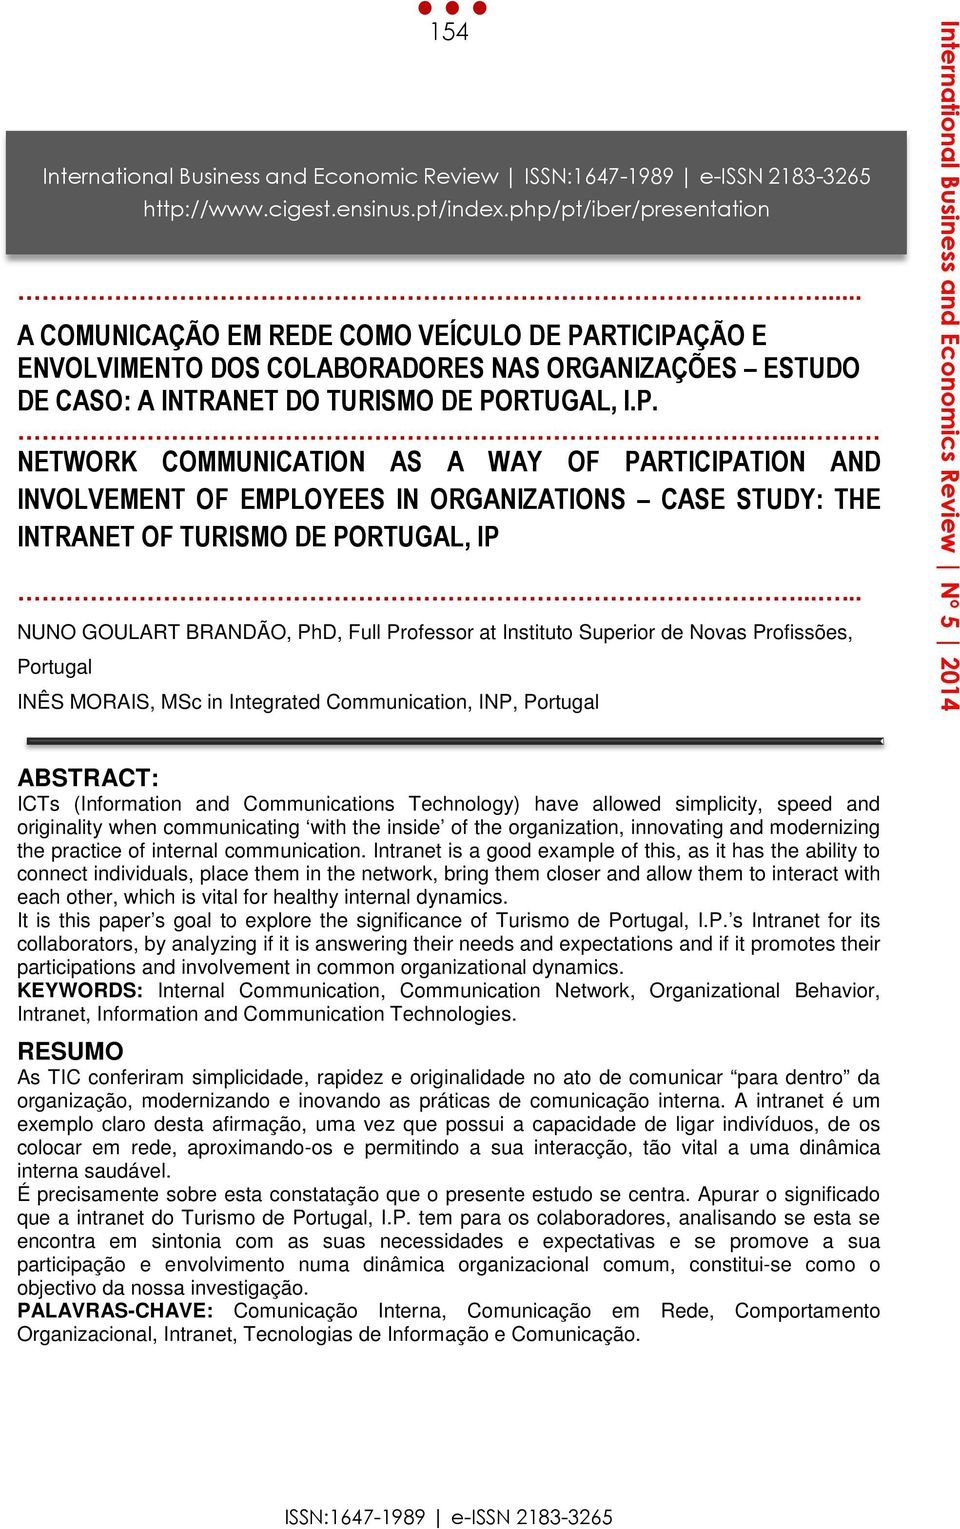 ..... NUNO GOULART BRANDÃO, PhD, Full Professor at Instituto Superior de Novas Profissões, Portugal INÊS MORAIS, MSc in Integrated Communication, INP, Portugal ABSTRACT: ICTs (Information and